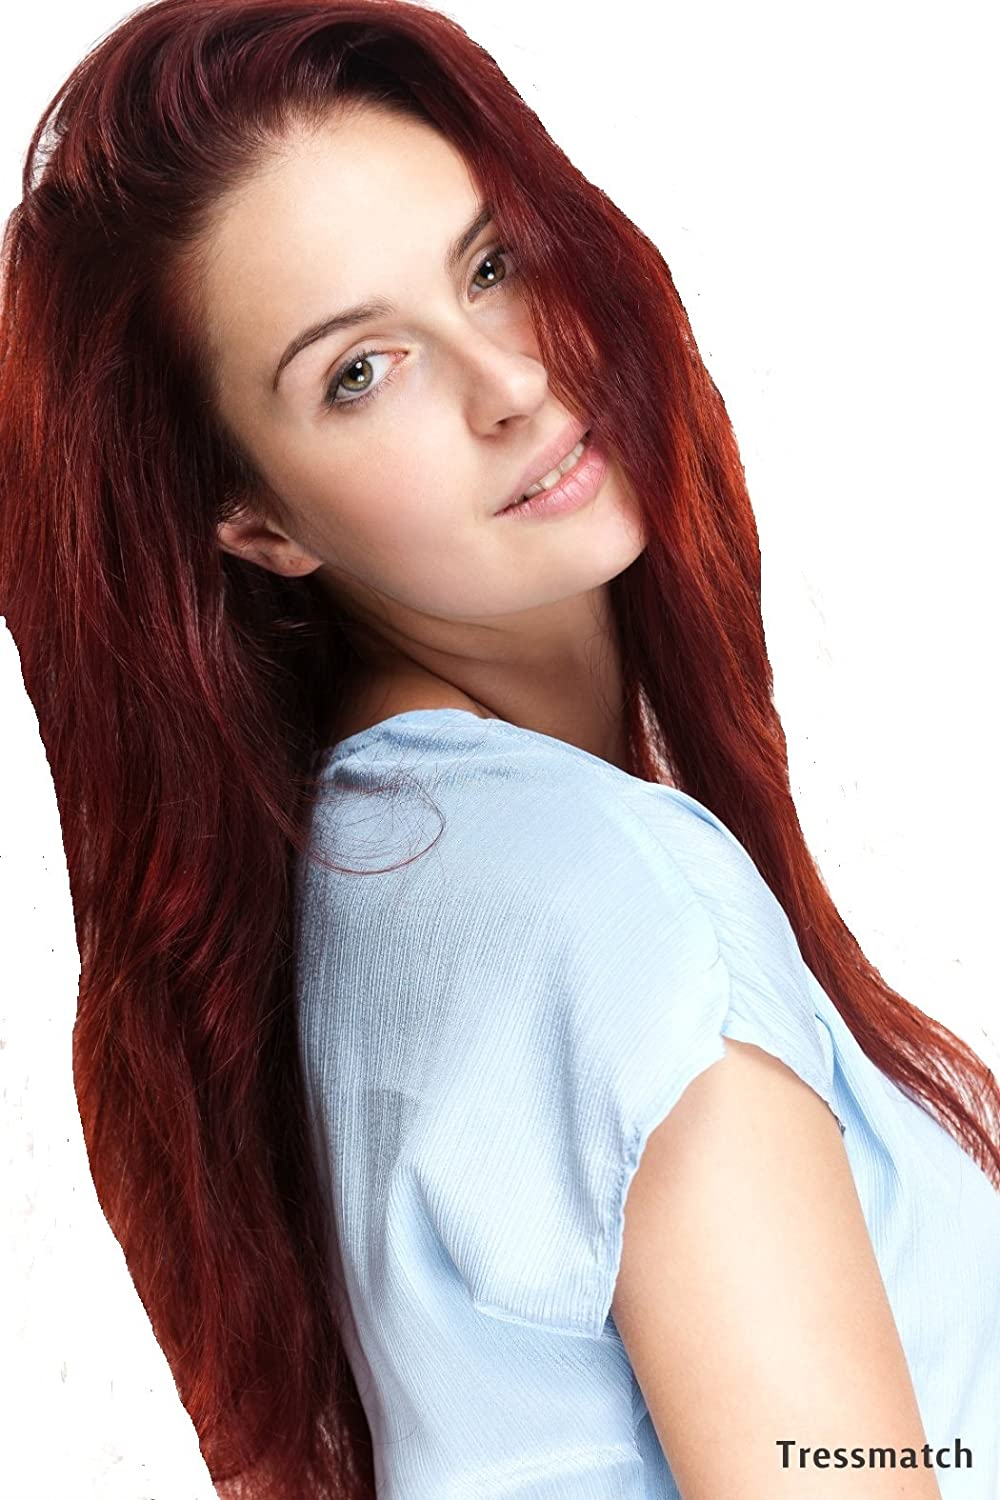 Amazon tressmatch 20 22 clip in remy human hair burgundy amazon tressmatch 20 22 clip in remy human hair burgundy extensions dark auburnvibrant red 33 9 piecespcs thick to ends full head set set pmusecretfo Choice Image